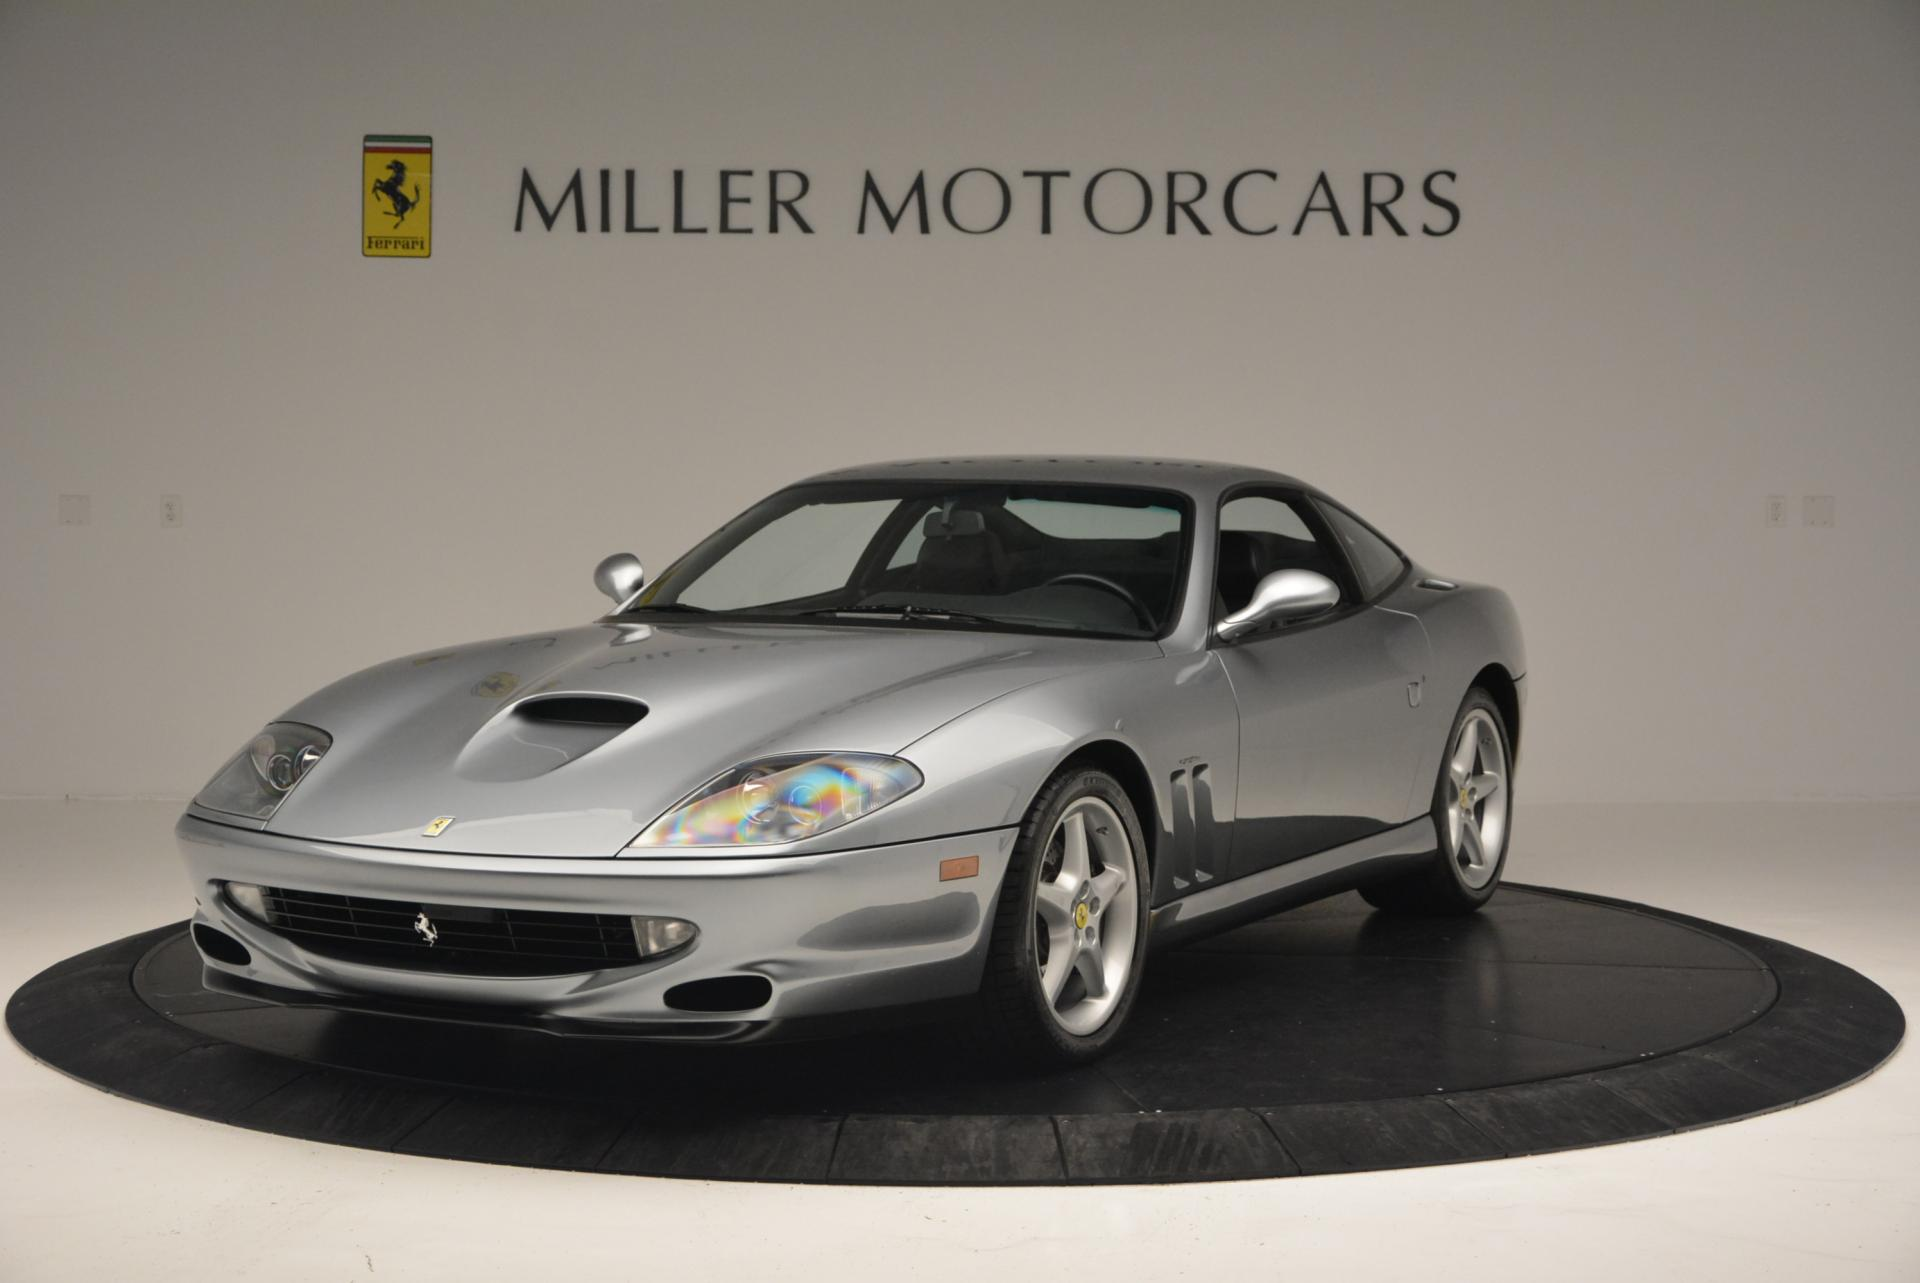 Used 1997 Ferrari 550 Maranello for sale Sold at Alfa Romeo of Greenwich in Greenwich CT 06830 1